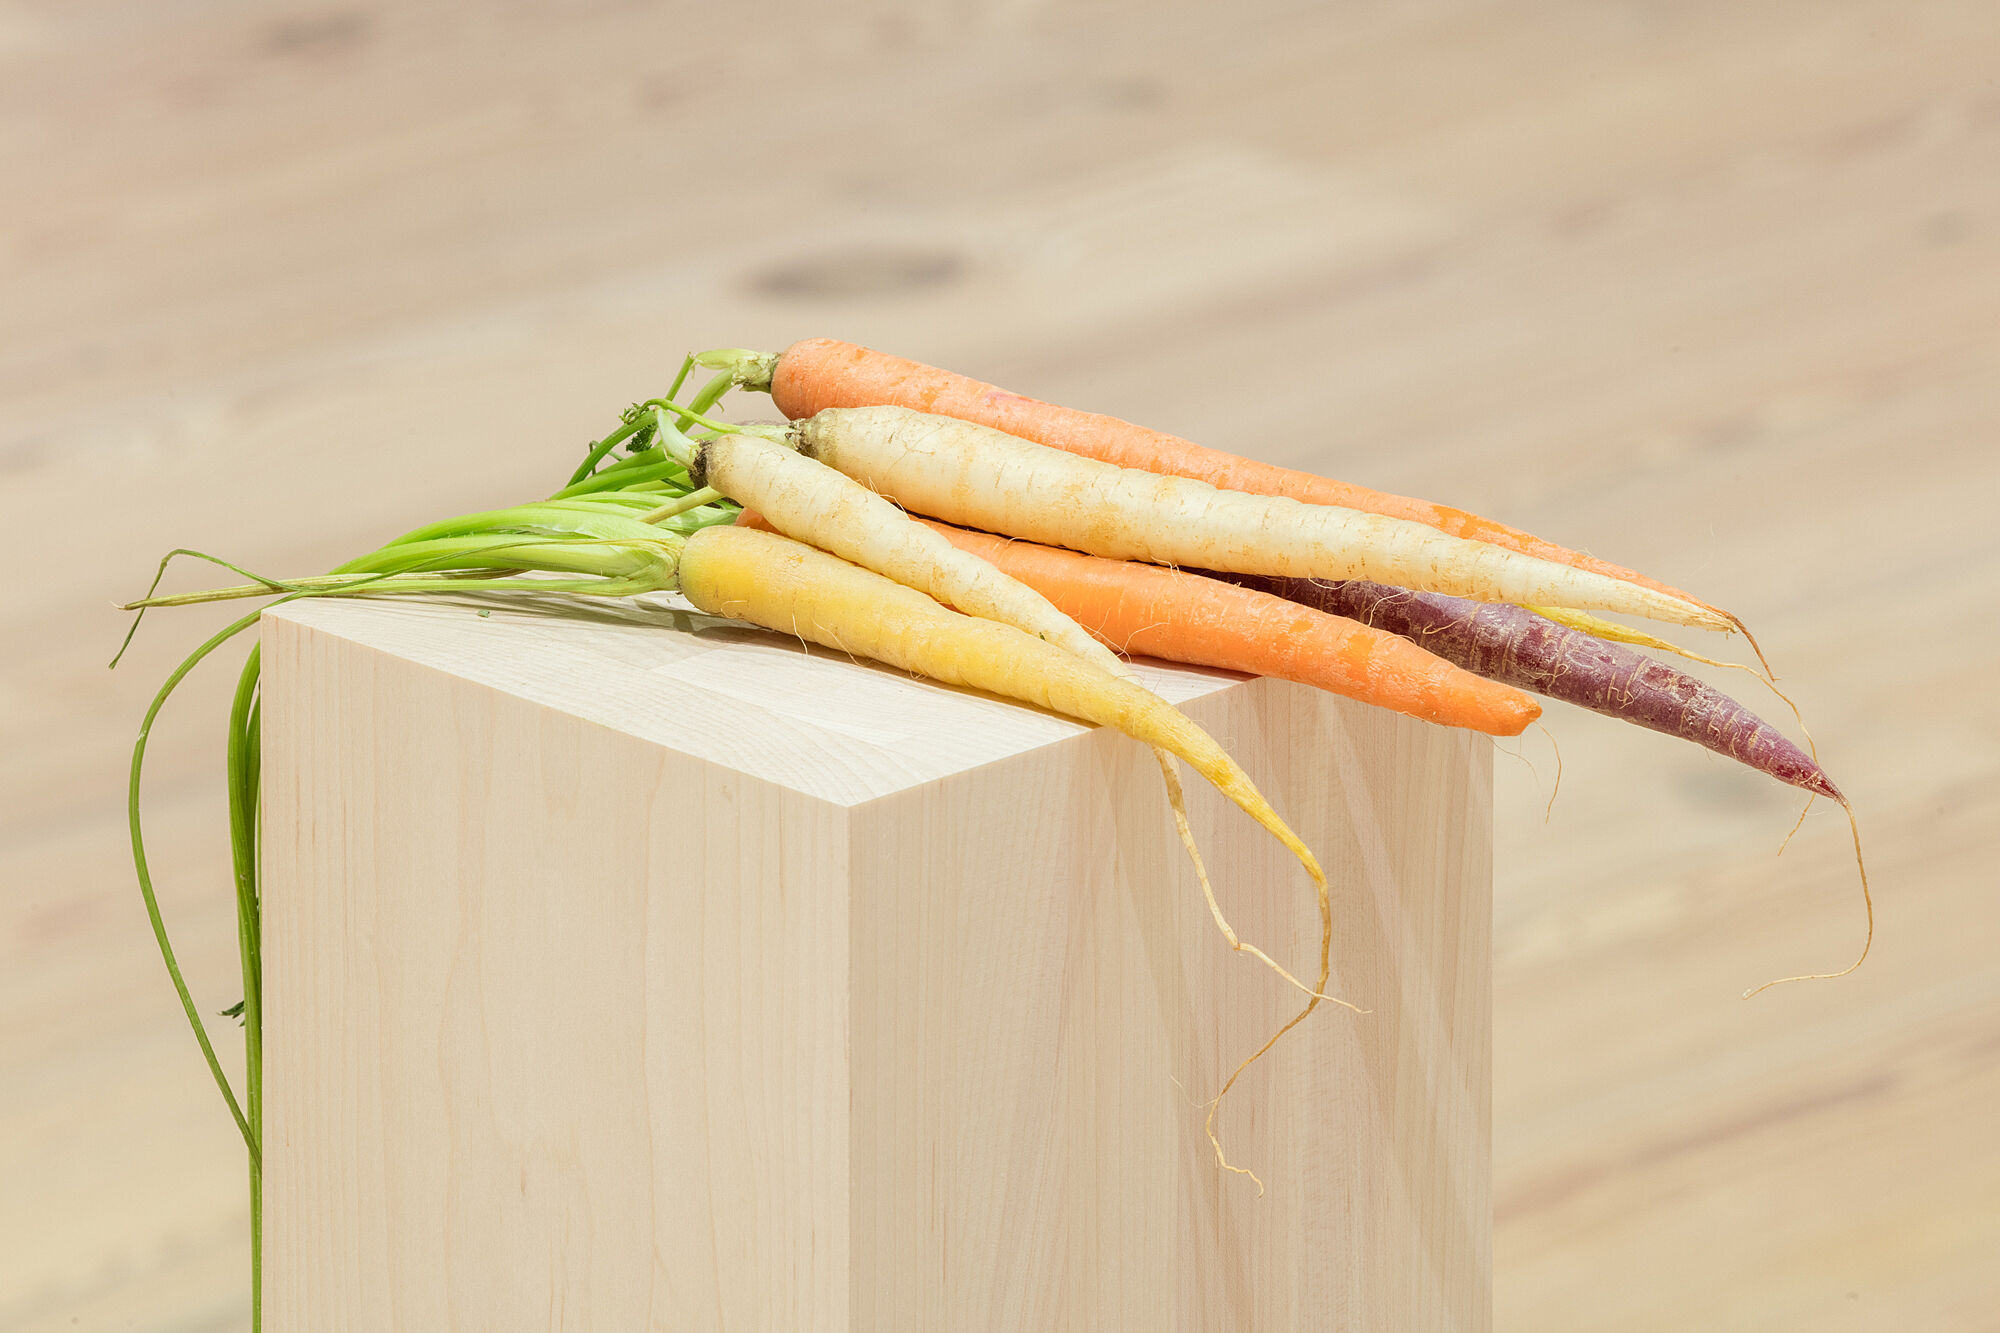 A photo of a bunch of carrots on a plinth.